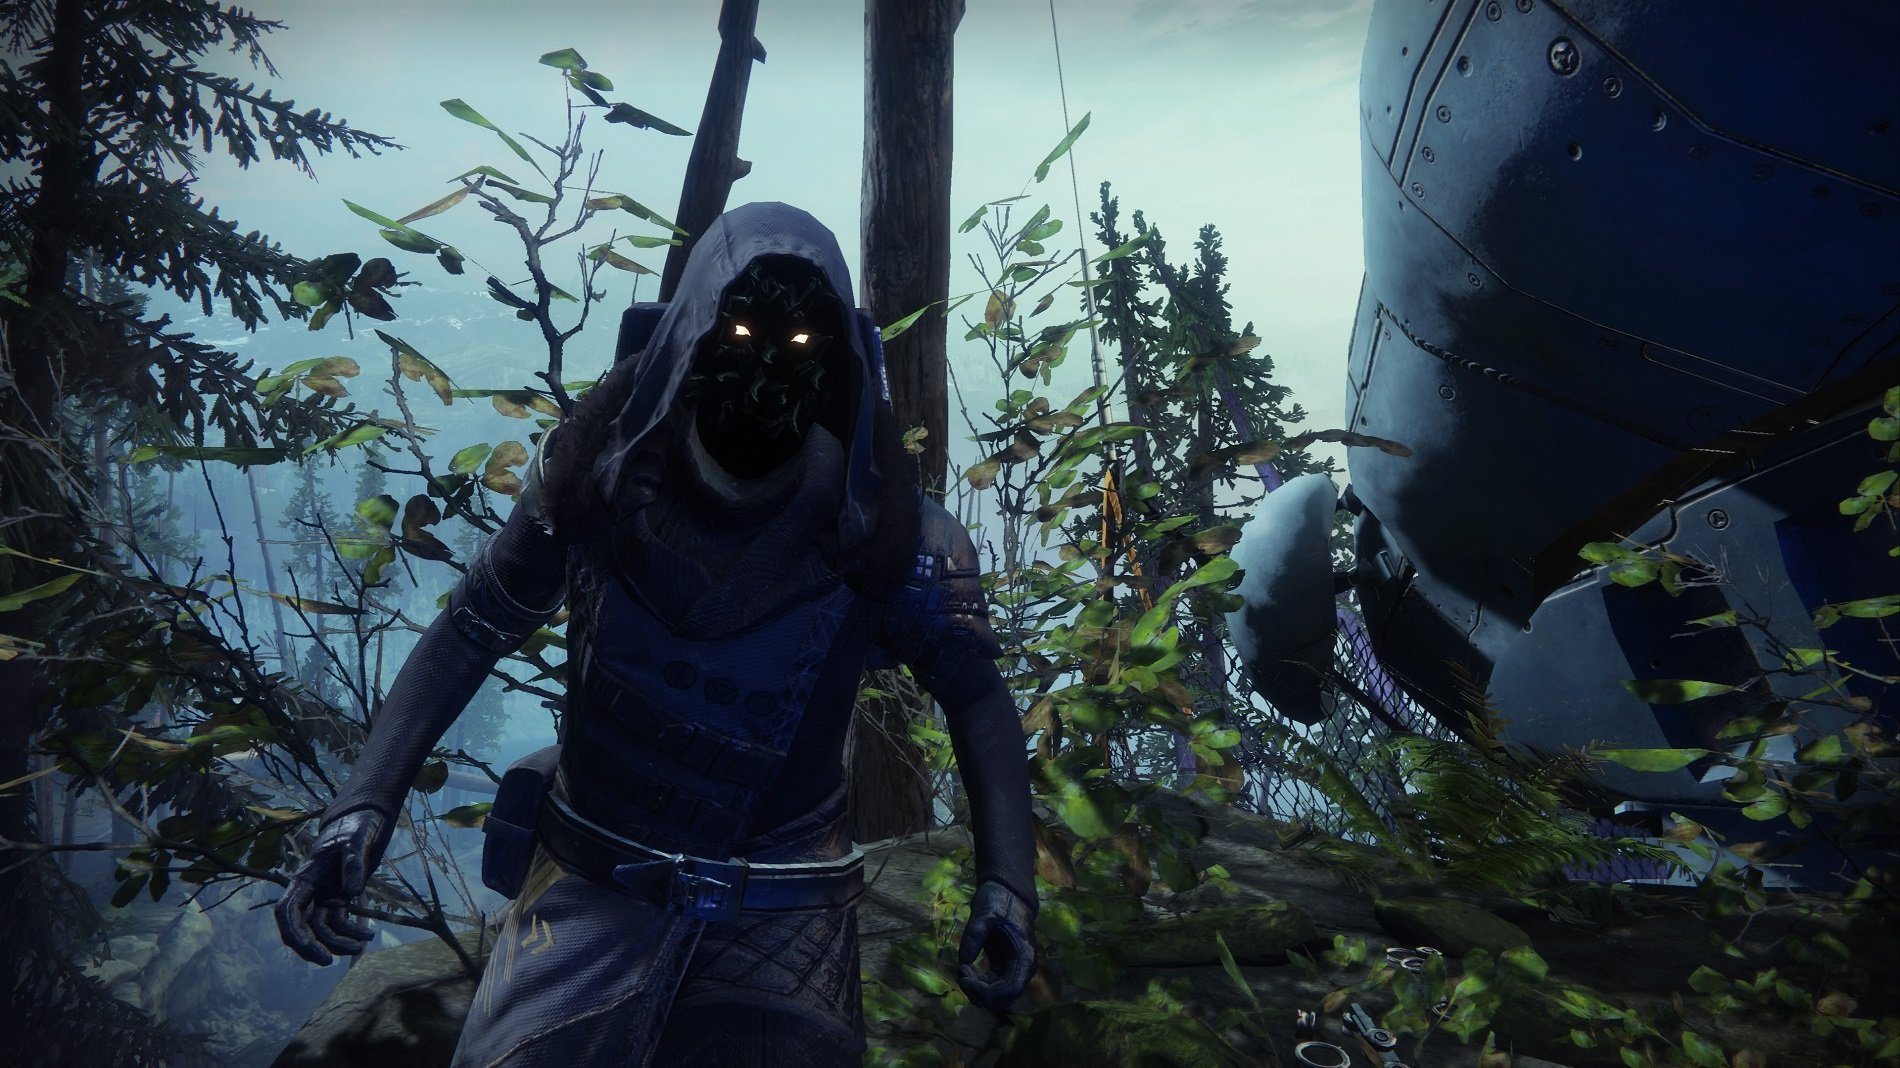 Where to find Xur in Destiny 2 - July 10, 2020